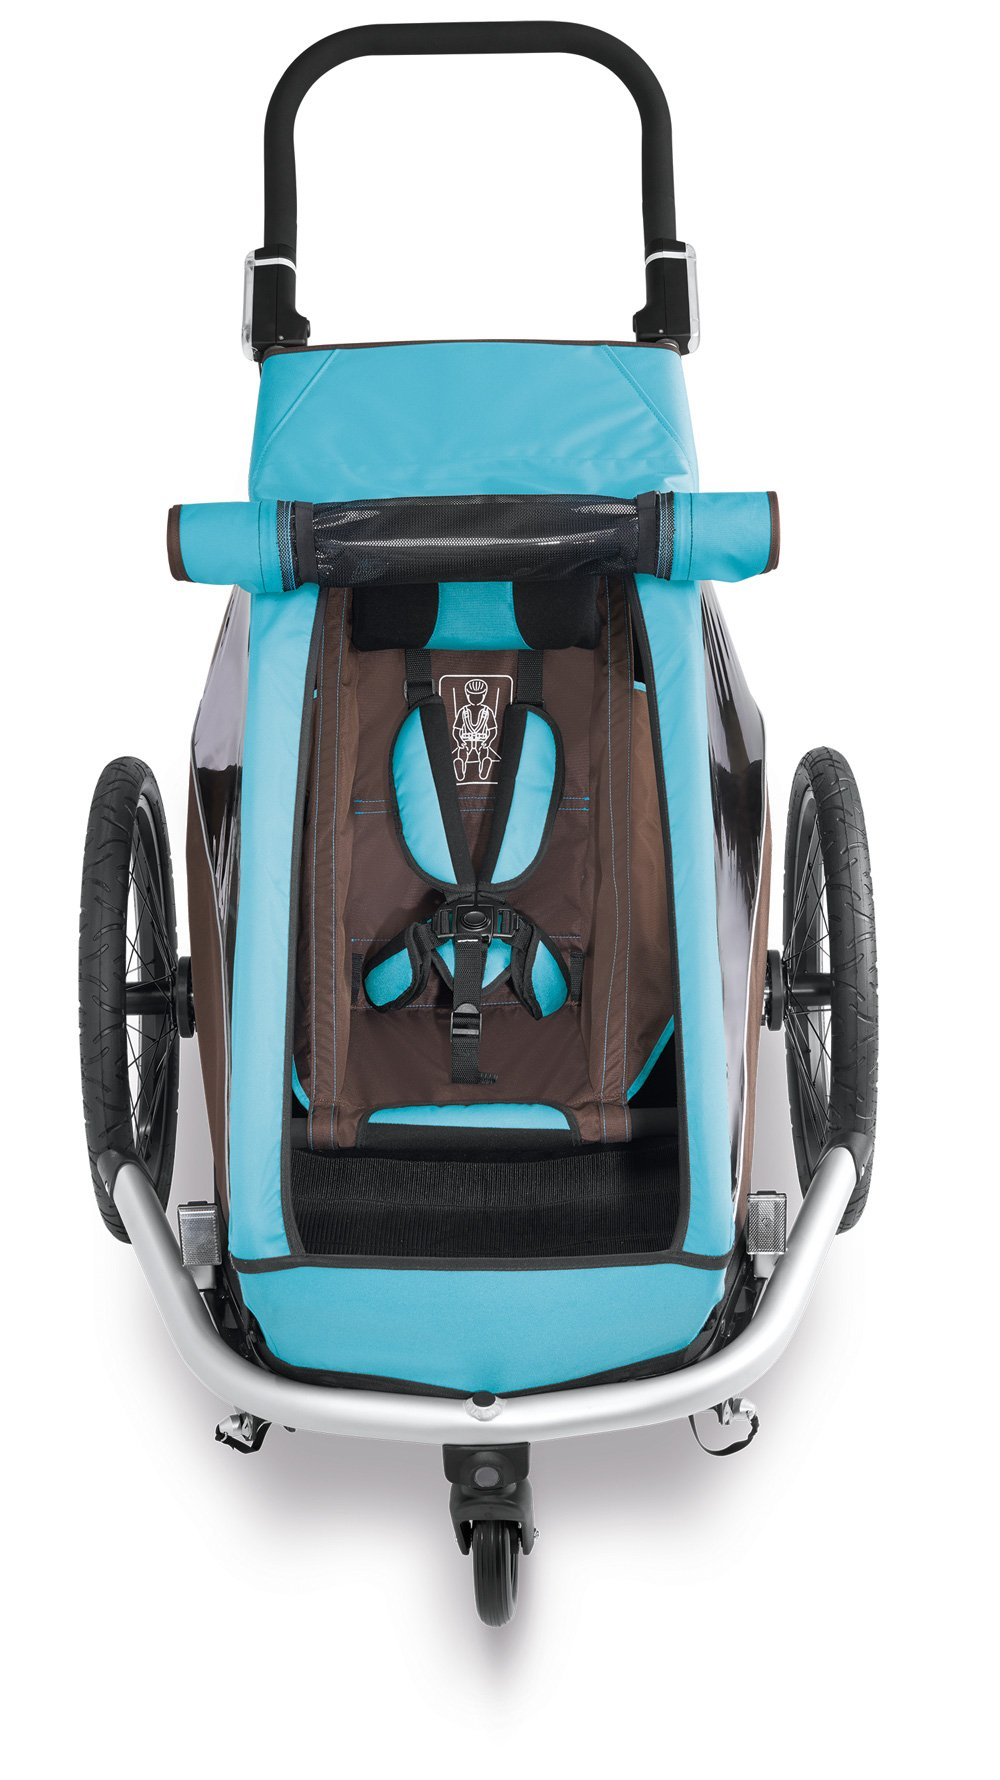 Croozer Kid Plus for 1 - 3 in 1 Single Child Trailer Sky Blue / Brown by Croozer (Image #4)